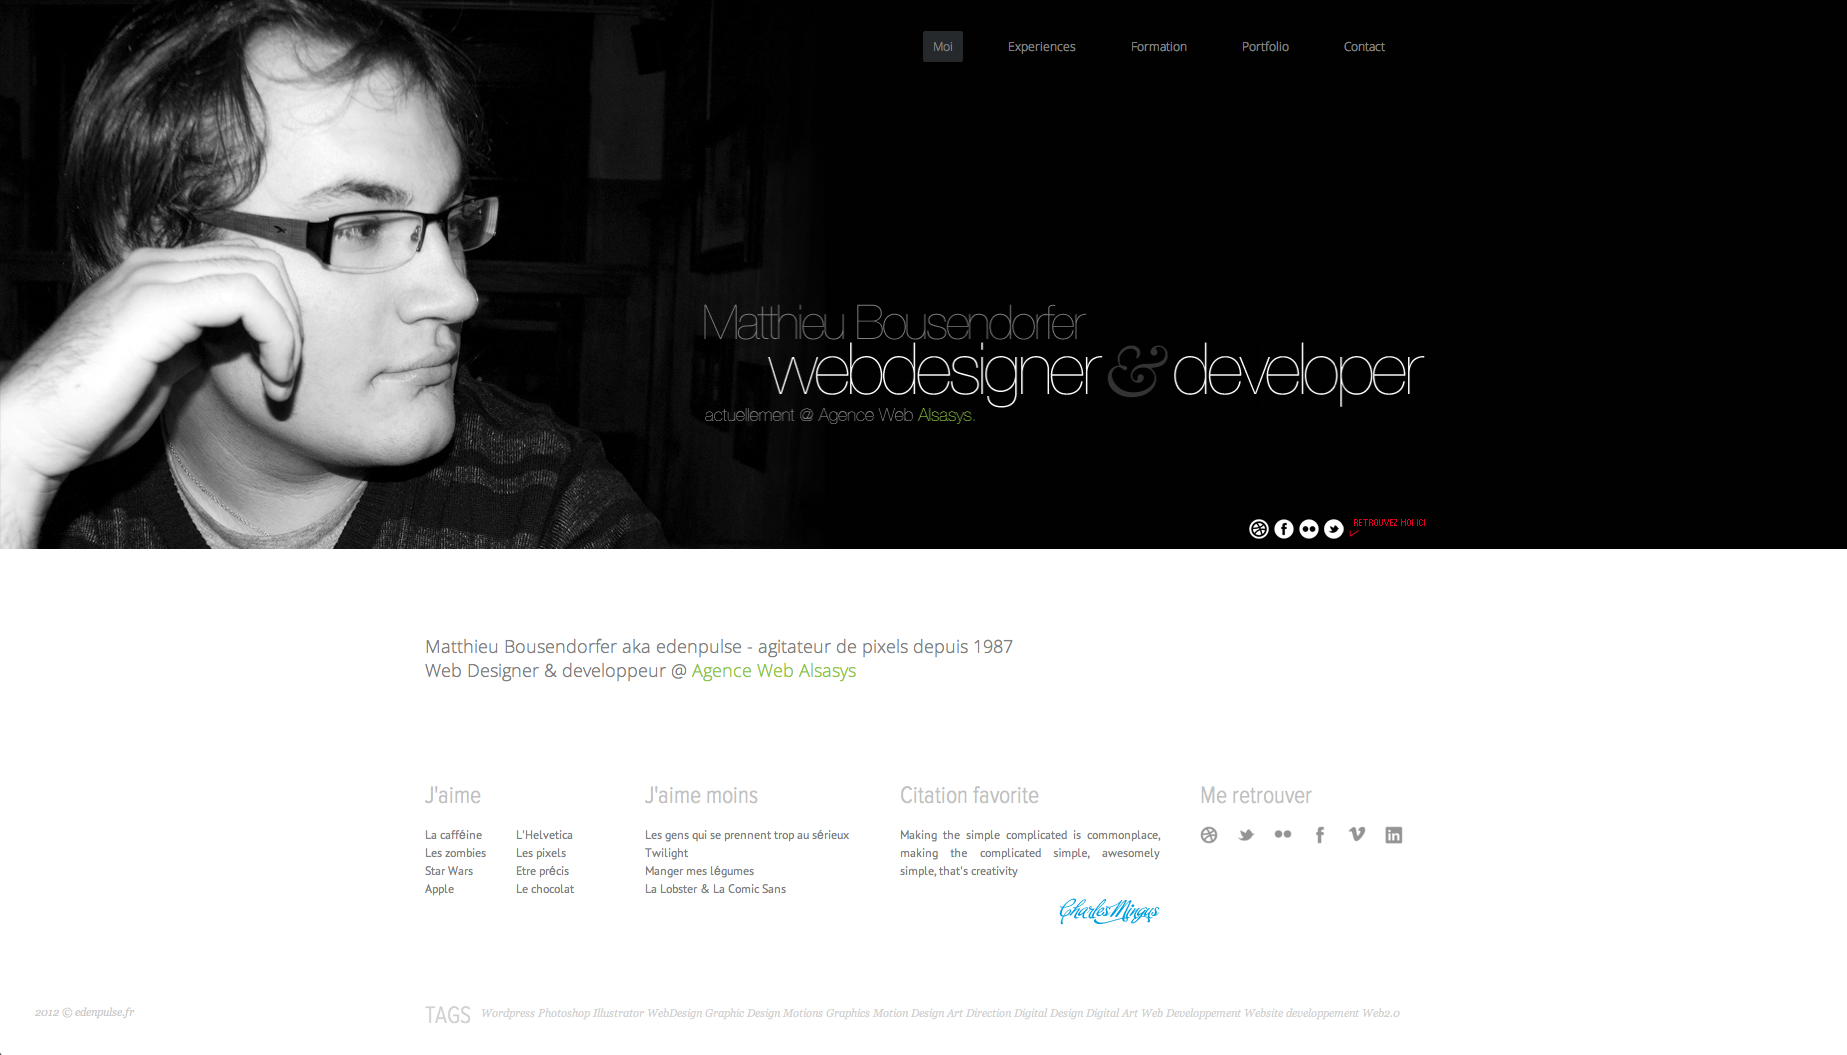 Matthieu Bousendorfer Website Screenshot